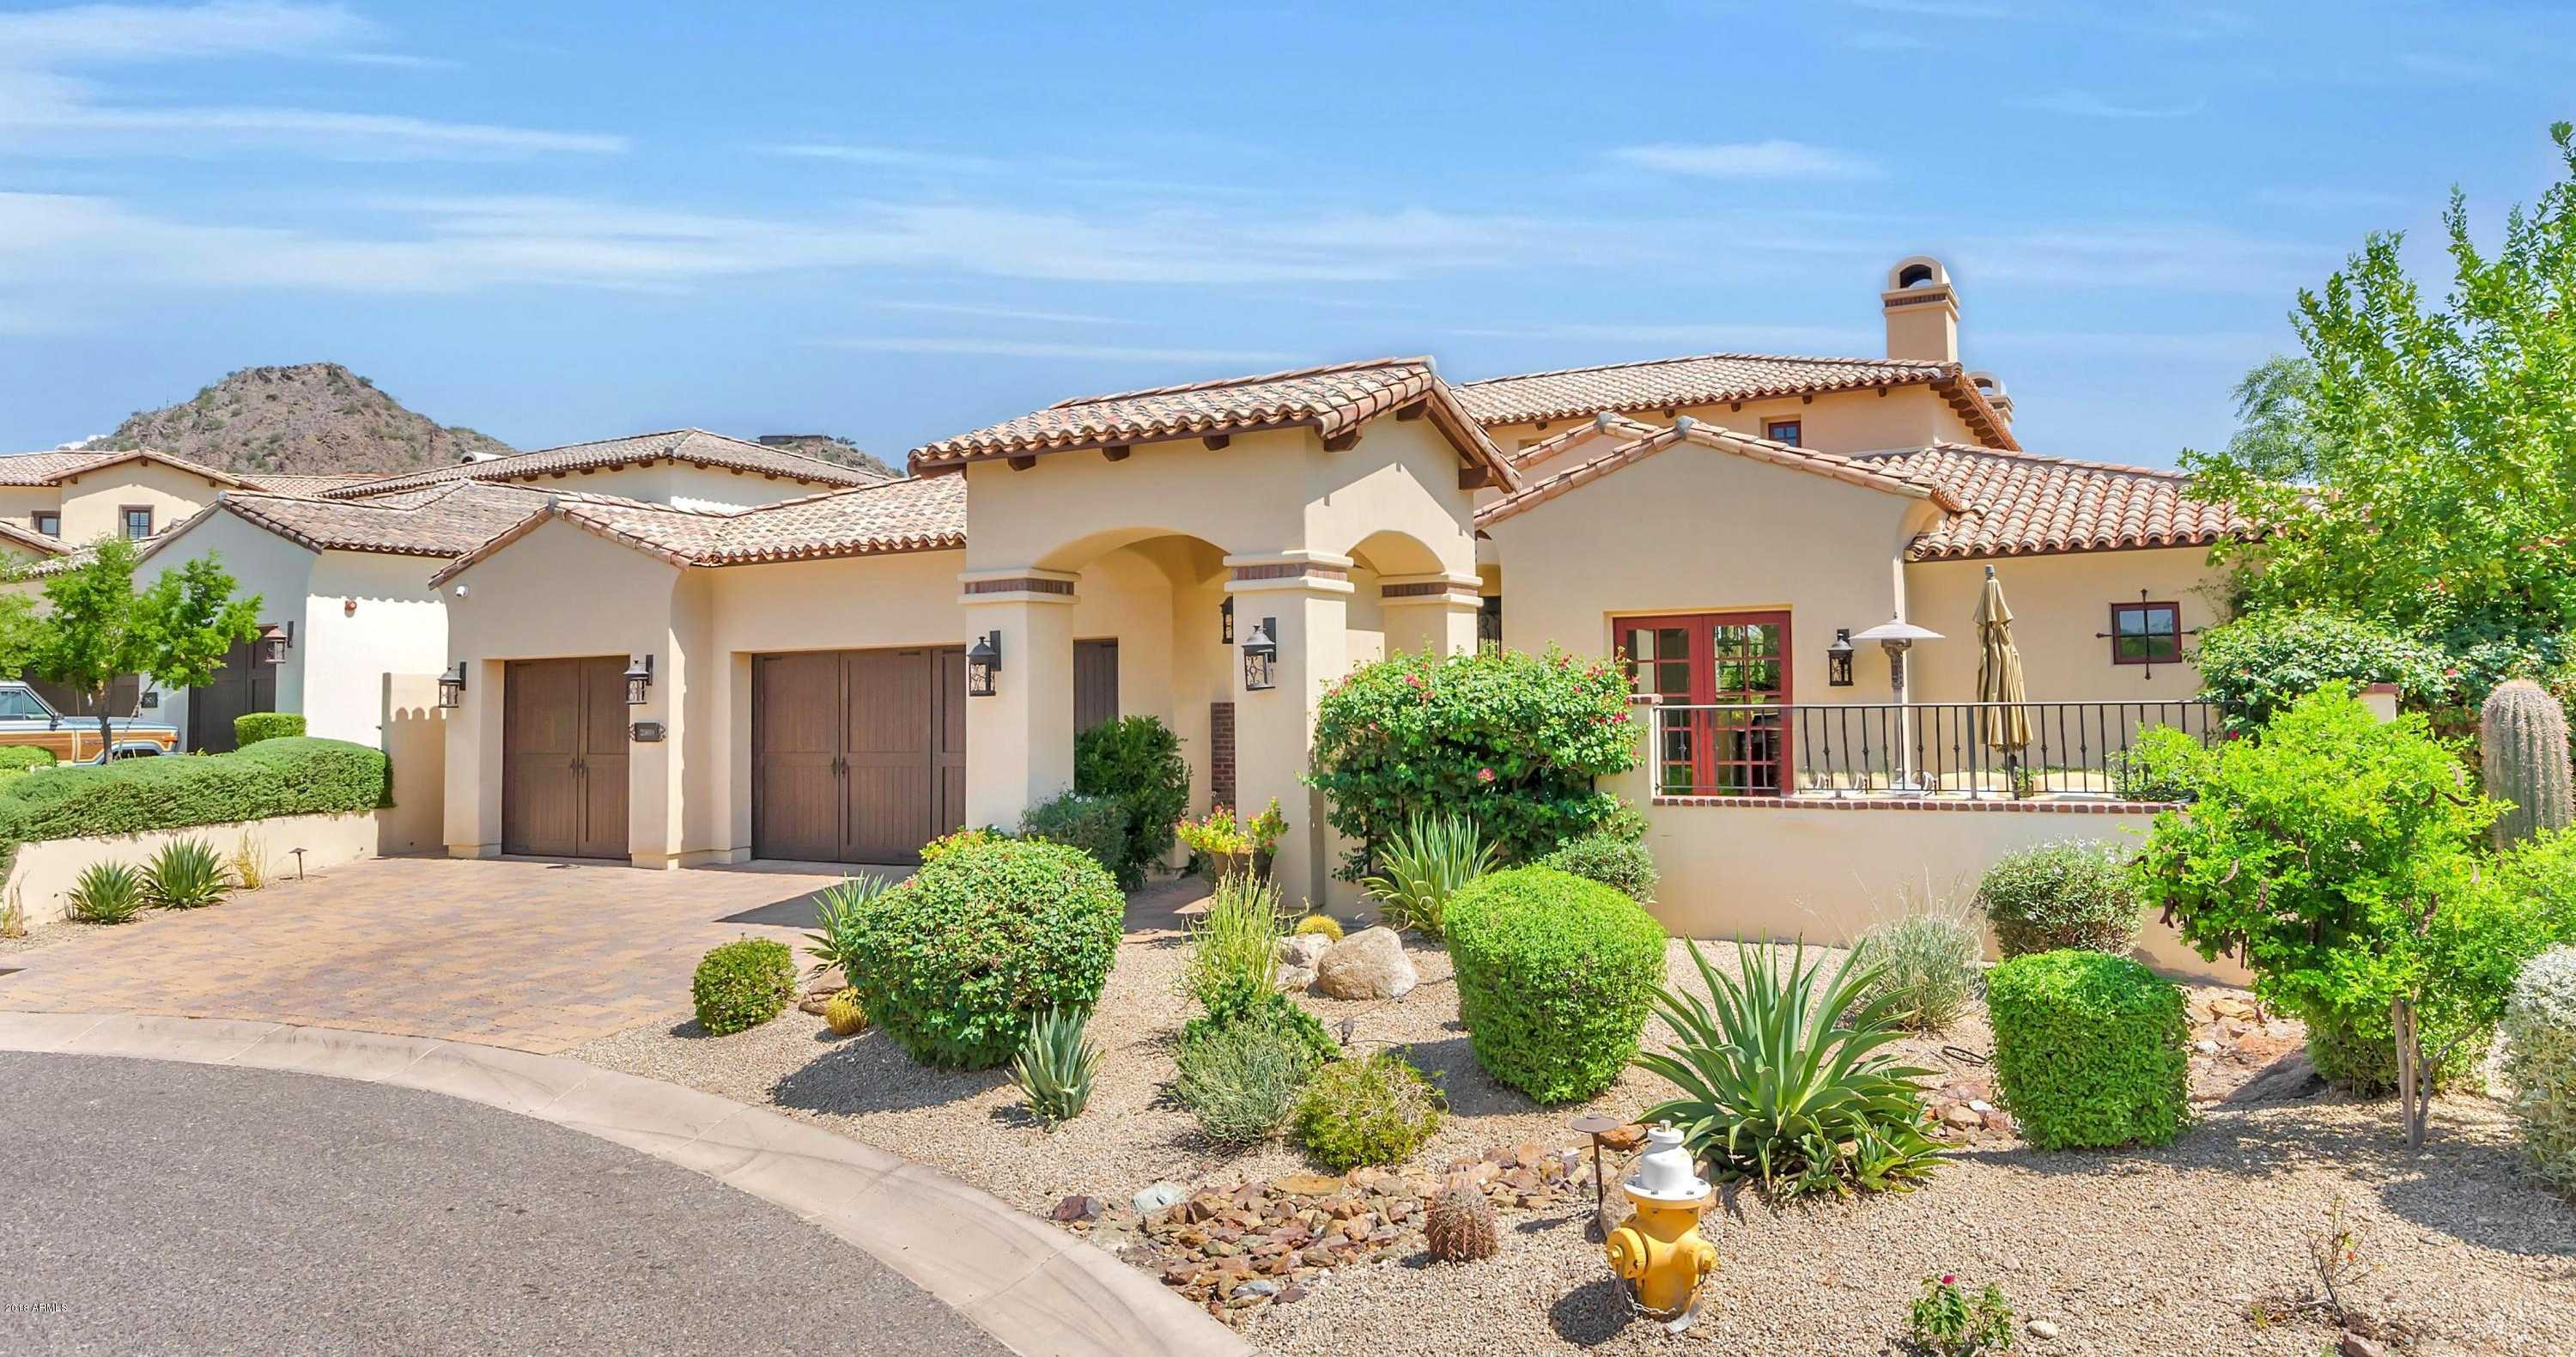 $2,075,000 - 3Br/4Ba - Home for Sale in The Village At Paradise Reserve, Paradise Valley